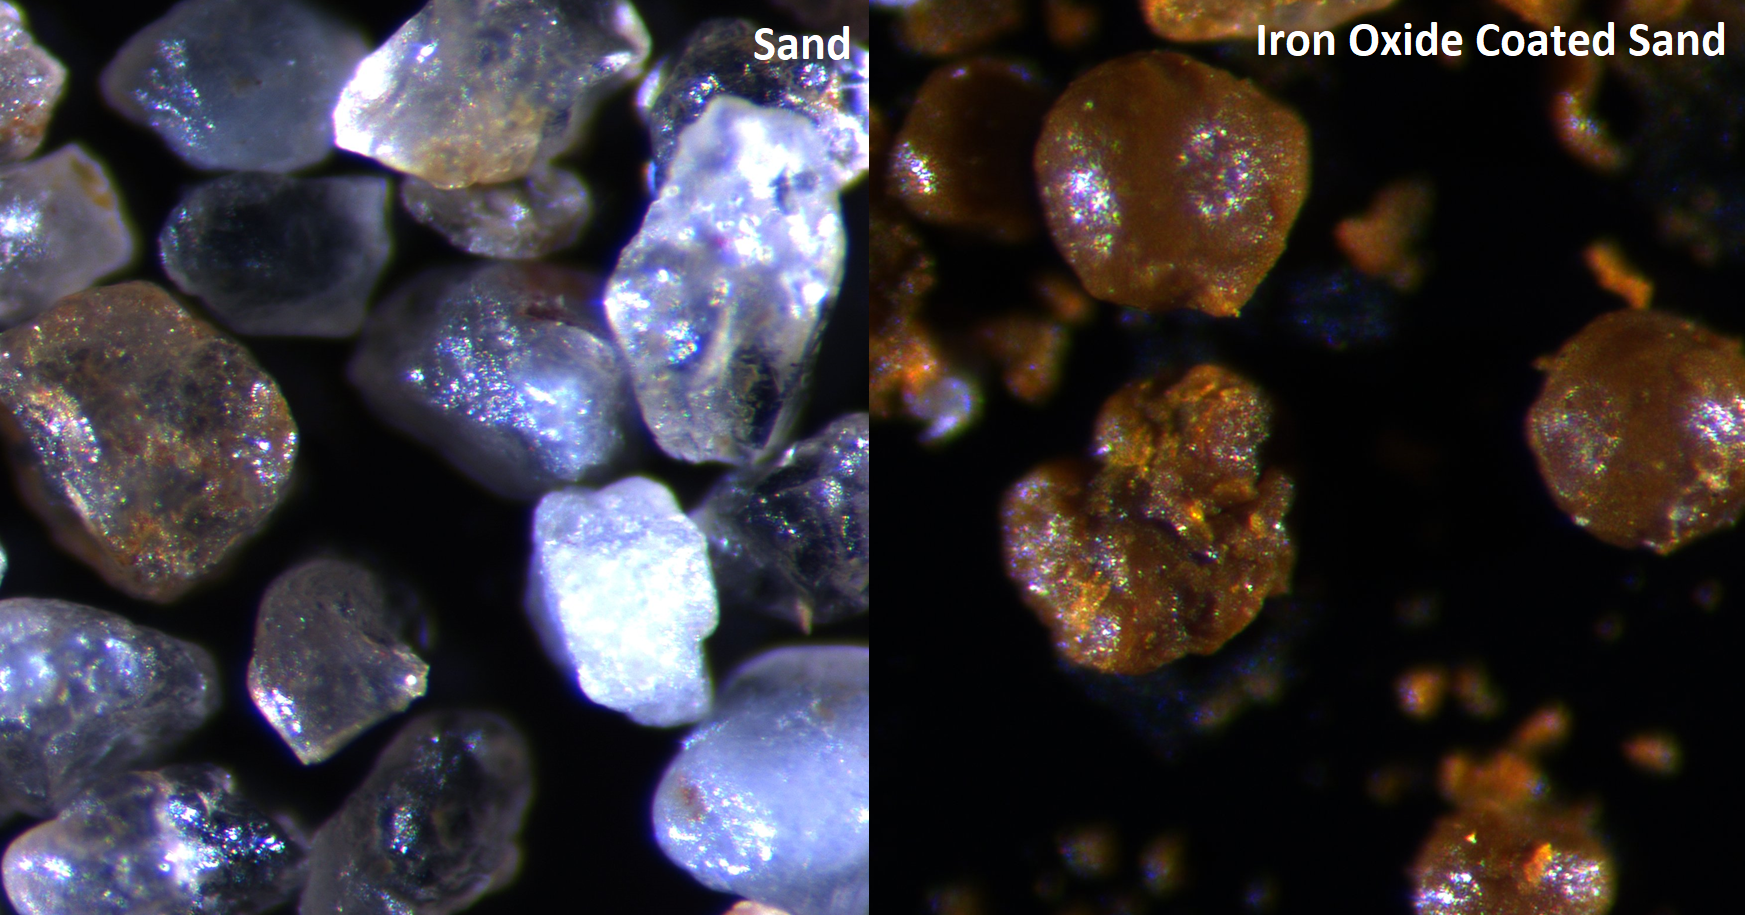 Iron-oxide coated sands created in the lab styles=